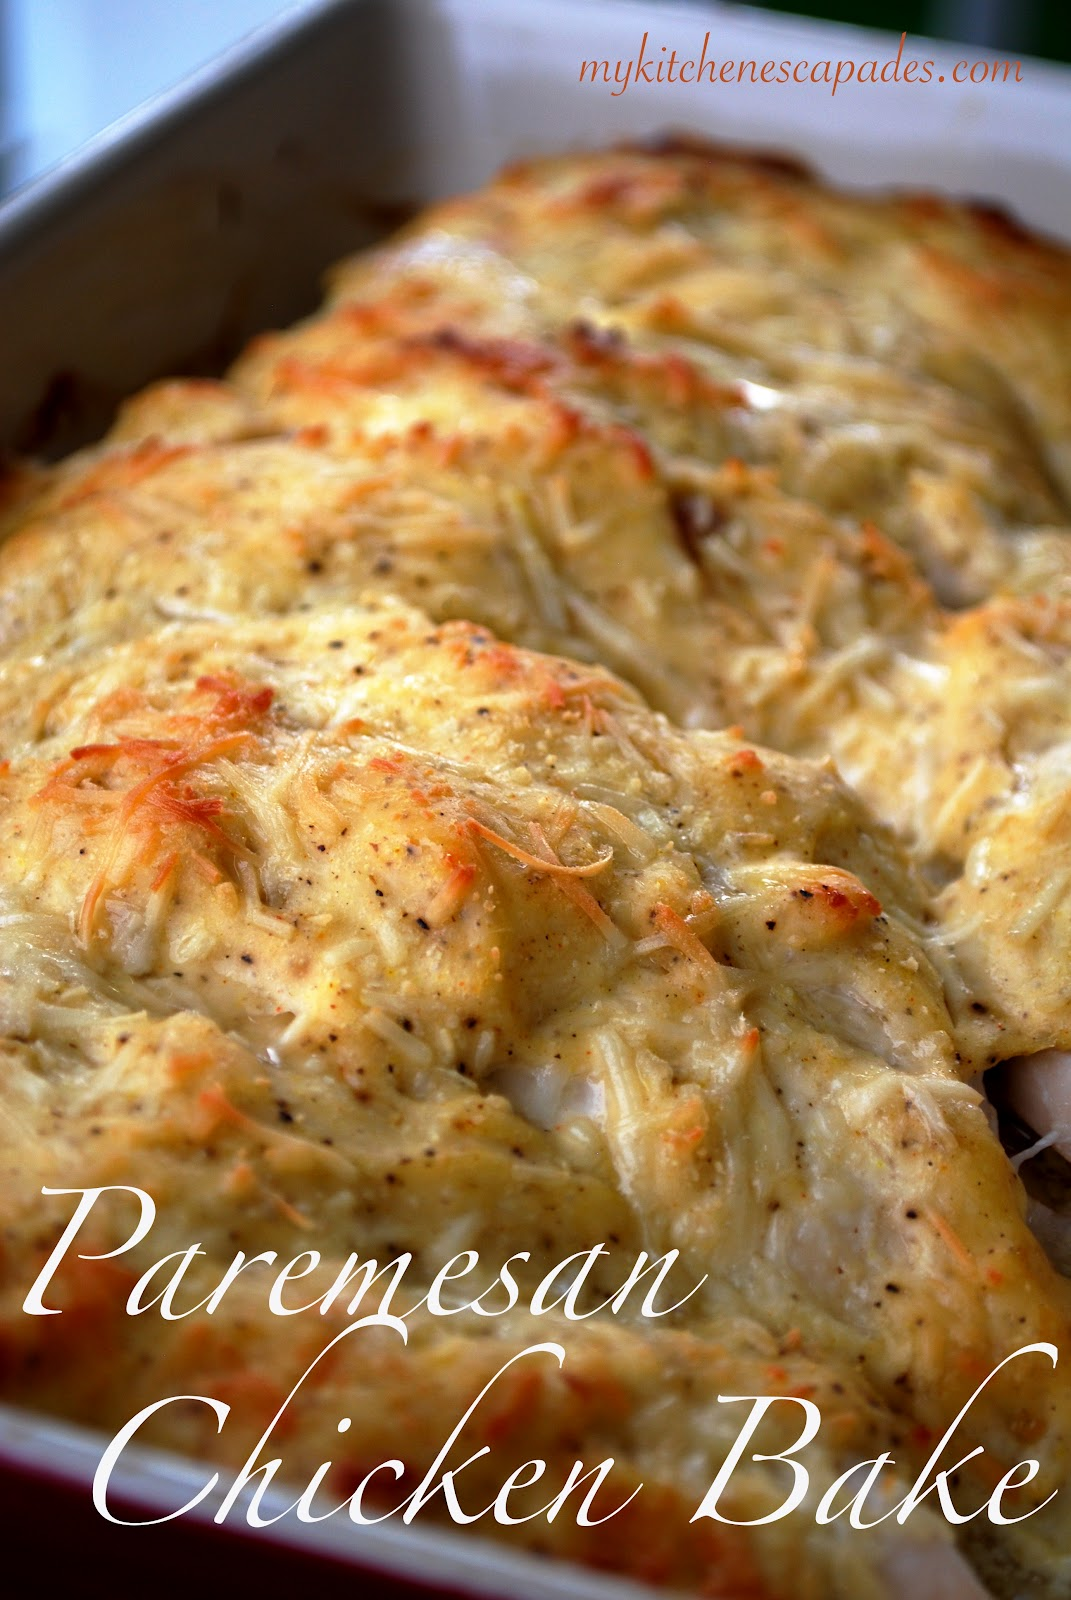 Parmesan Chicken Bake ~ Delicious Food Recipes